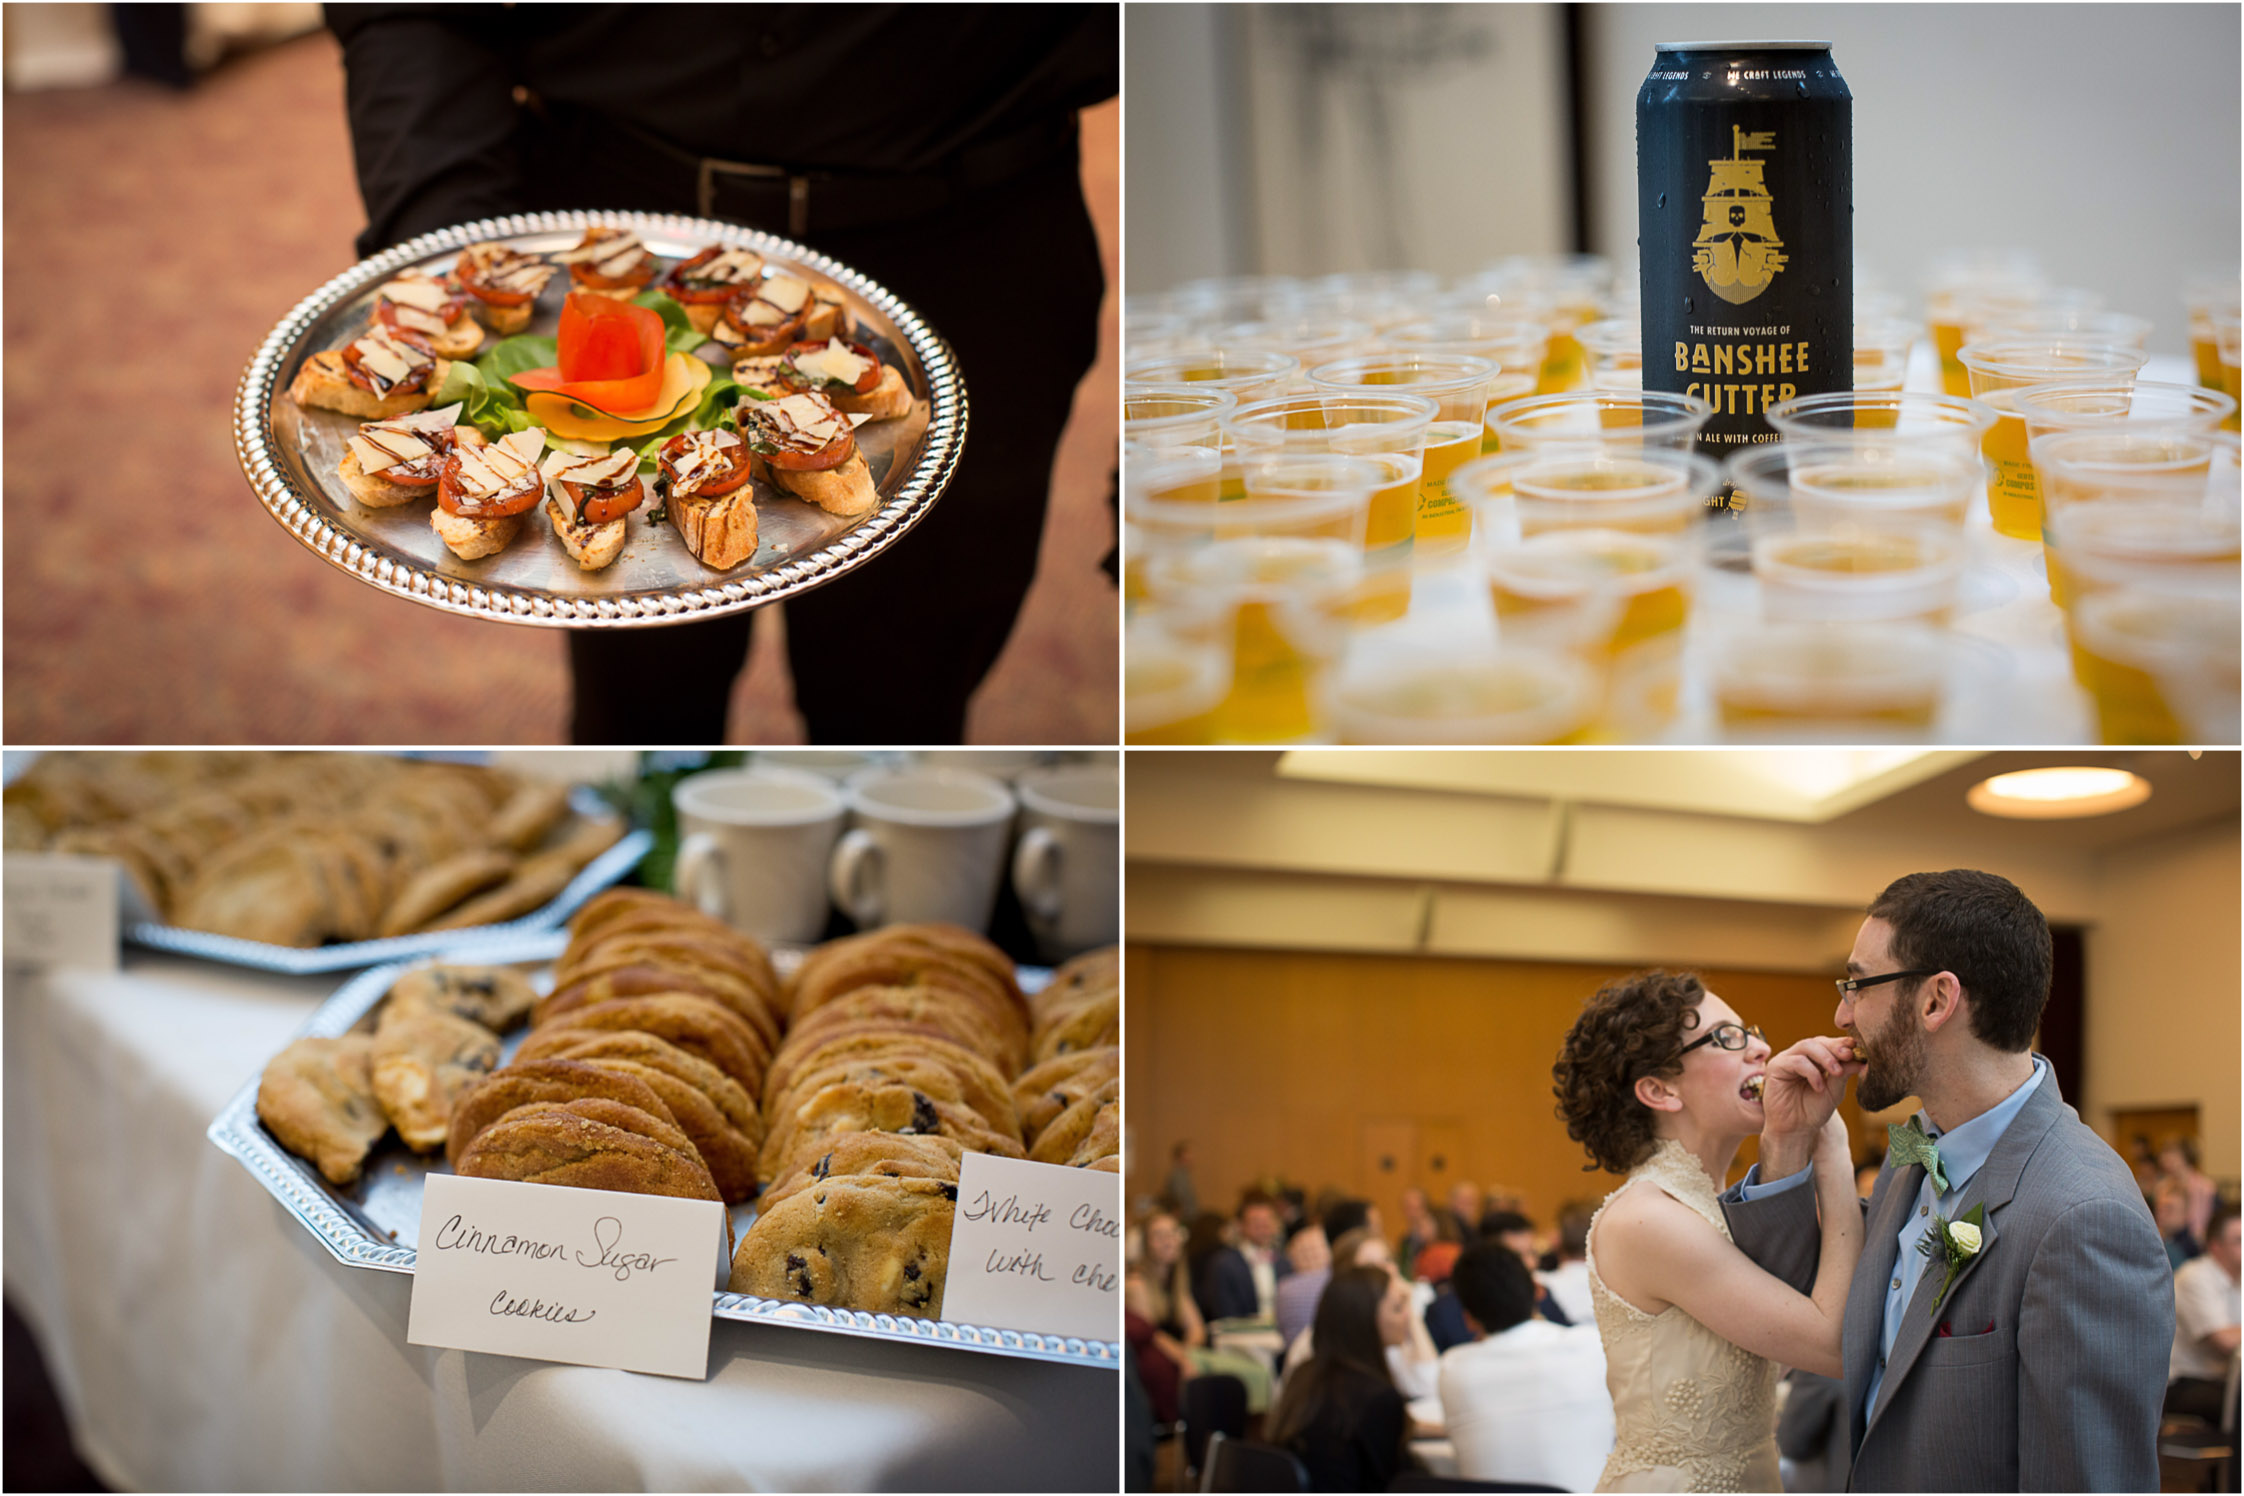 15-mount-zion-jewish-temple-wedding-reception-details-cookies-dessert-beer-mahonen-photography.jpg